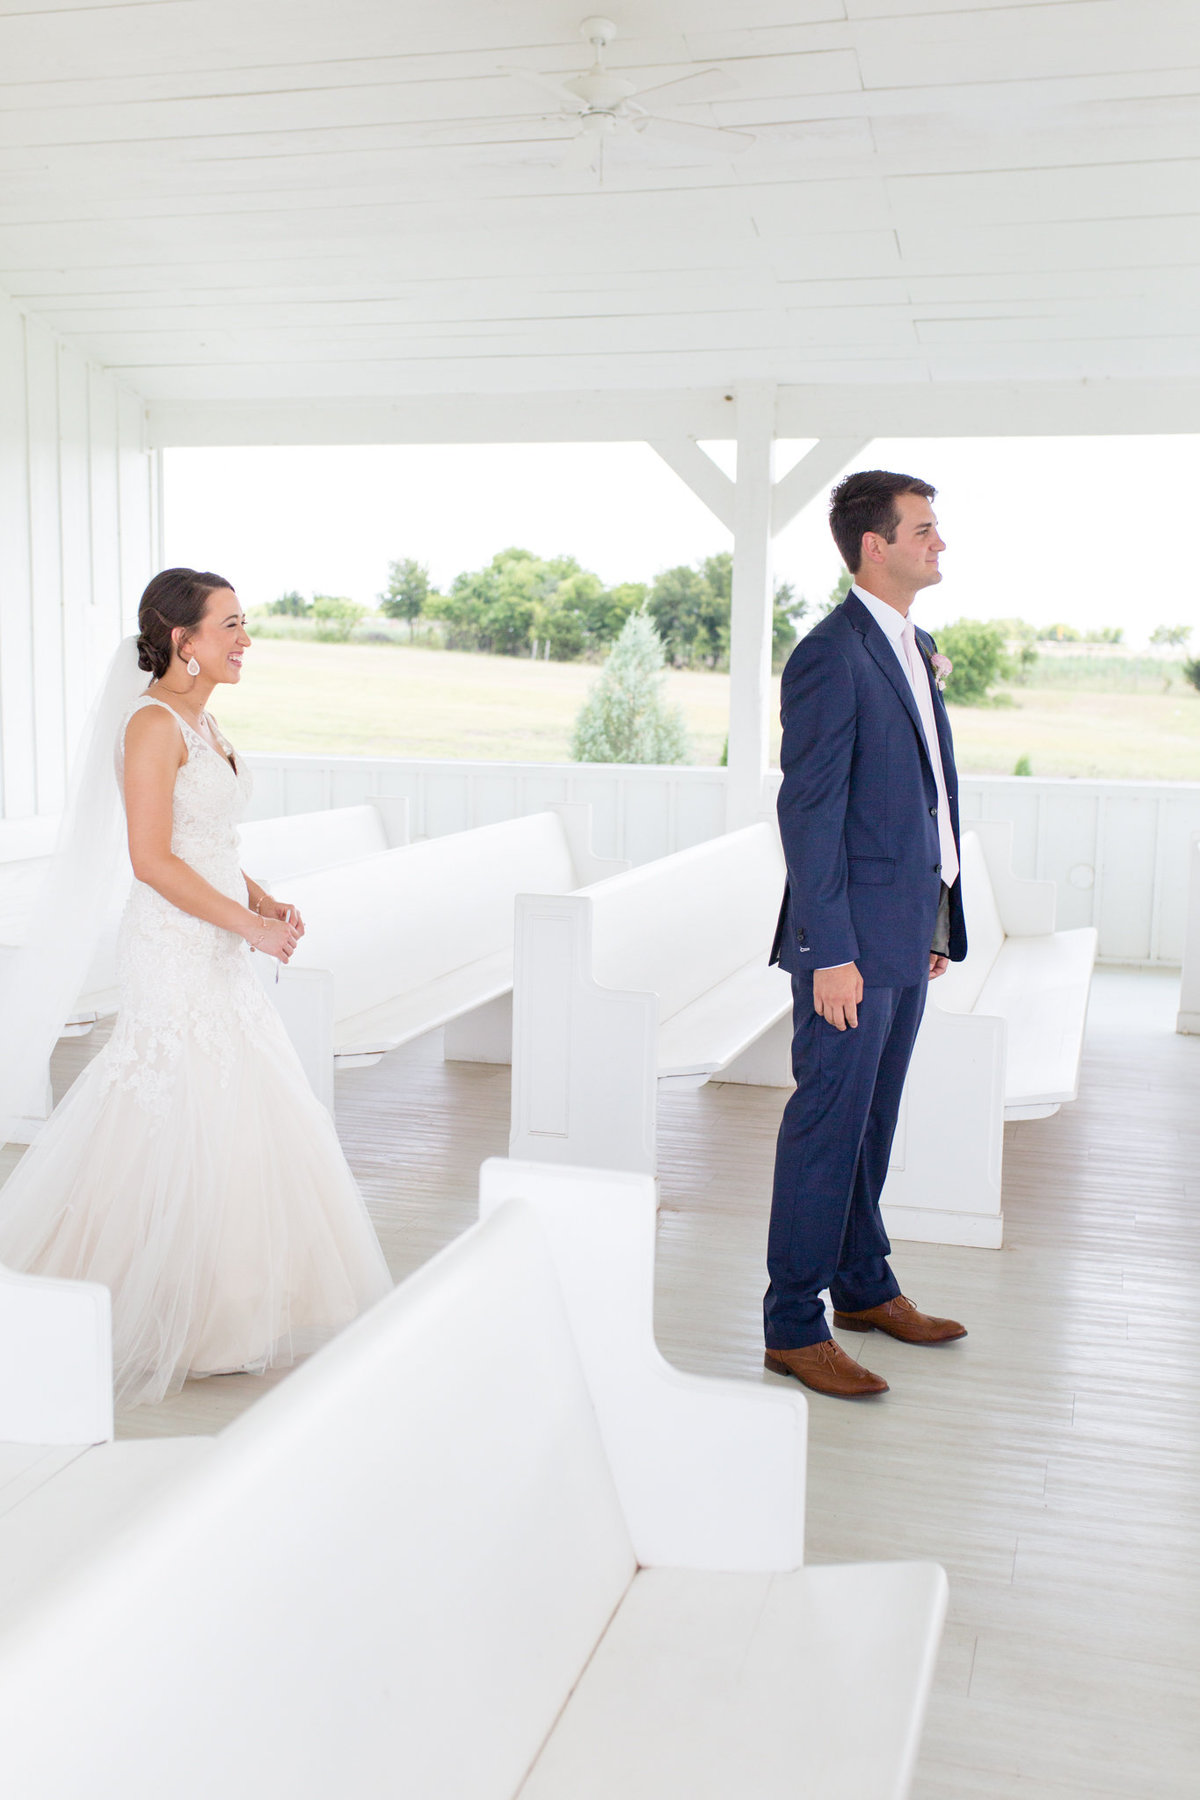 Grand Ivory Wedding | First Look | Dallas, Texas | DFW Wedding Photographer | Sami Kathryn Photography-1